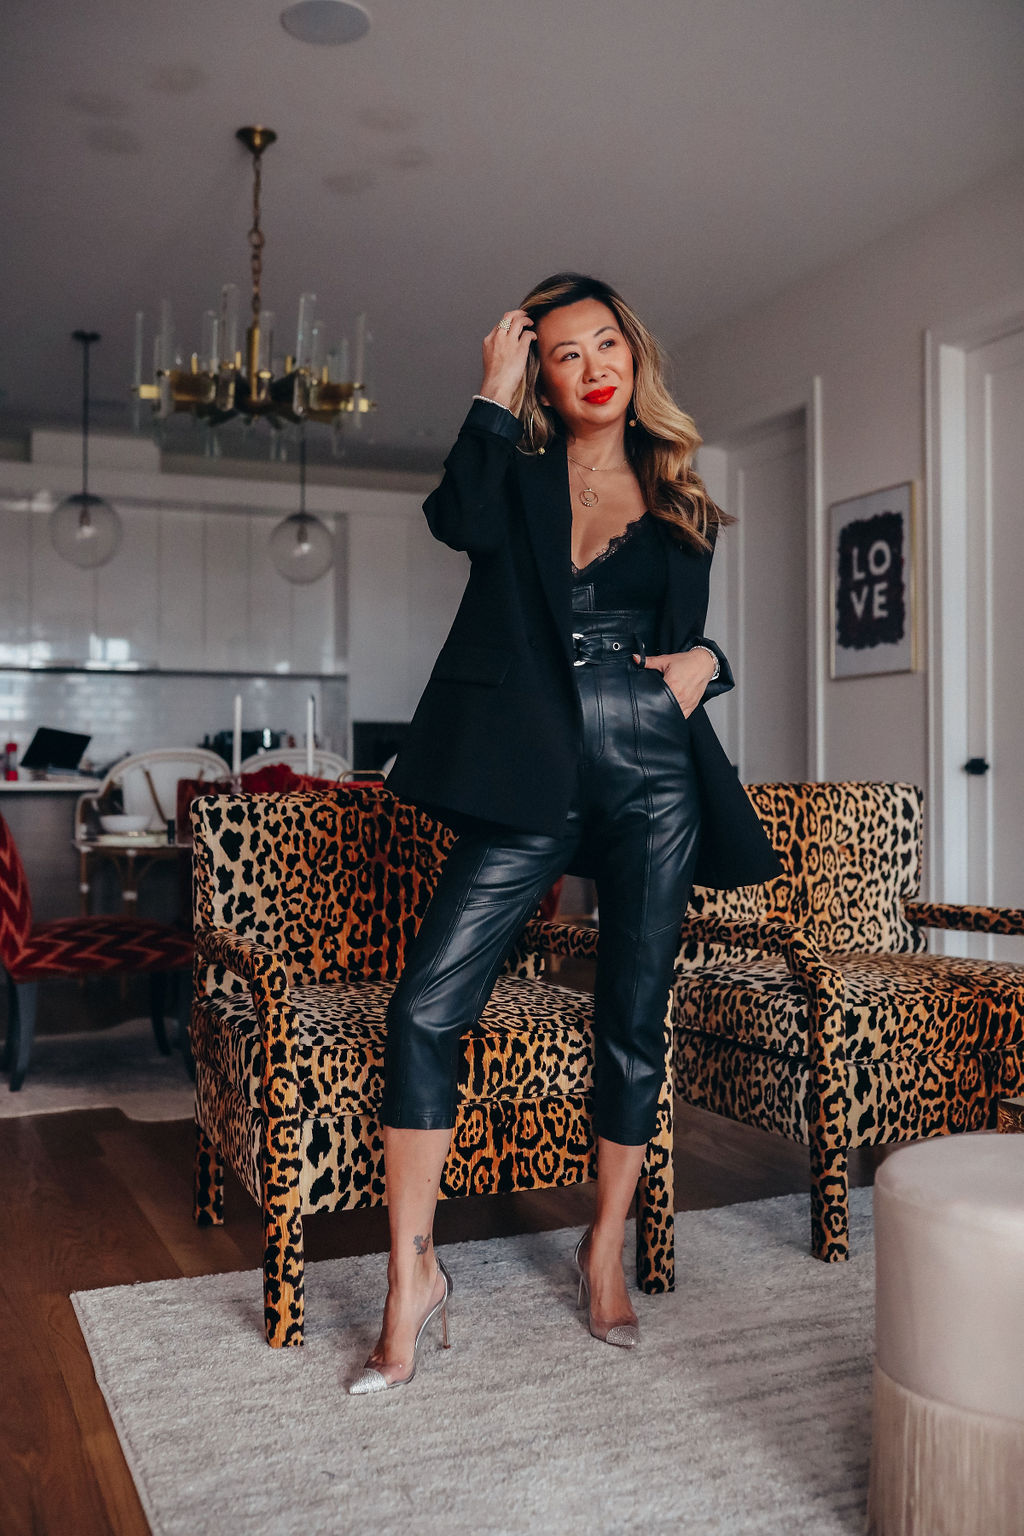 Anniston leather pants, corporate fashion to full-time blogging, how to get a career blogging, how to start a blogging career, blogging as a job, blogging to make money, career advise, women career advice, women's fashion industry careers, influencer careers, influencer advice, how to make money as an influencer, full time blogging, full time influencer, full time work as a blogger, how to work full time as a blogger, Red Soles and Red Wine, Jennifer Worman, career advice for women, job interview advice, switching careers advice, switching jobs advice, job advice for women, Lagos jewelry, Lagos Caviar Gold Double Circle Pendant Necklace, Lagos Caviar Gold Ball Beaded Necklace, Lagos Caviar Gold Hoop Earrings, Lagos Caviar Icon Semiprecious Stone Bracelet, Lagos Caviar Color Semiprecious Stone Bracelet